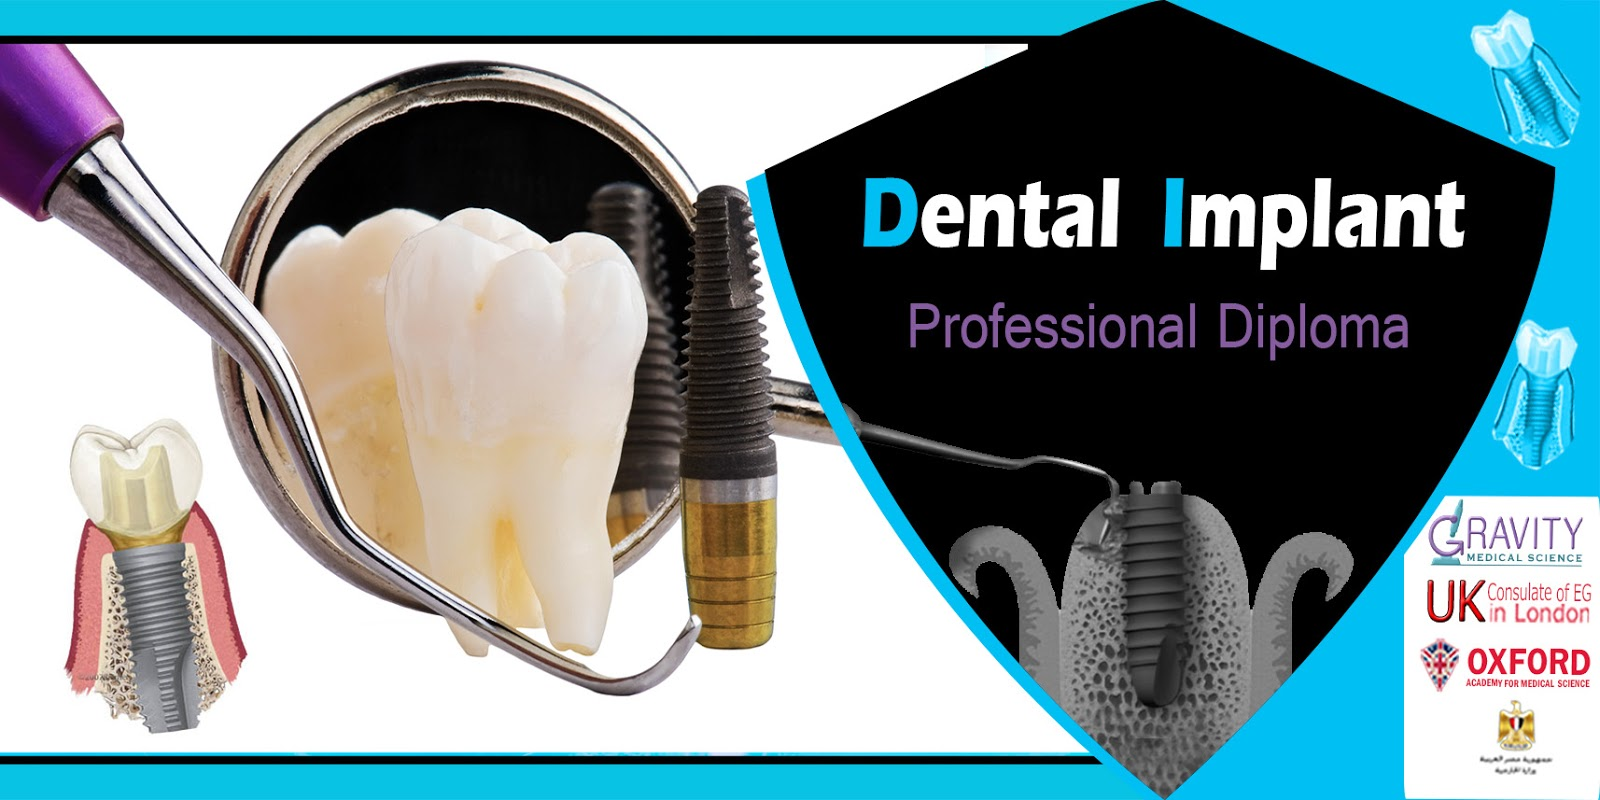 Gms Academy For Medical Training: Implant Dentistry